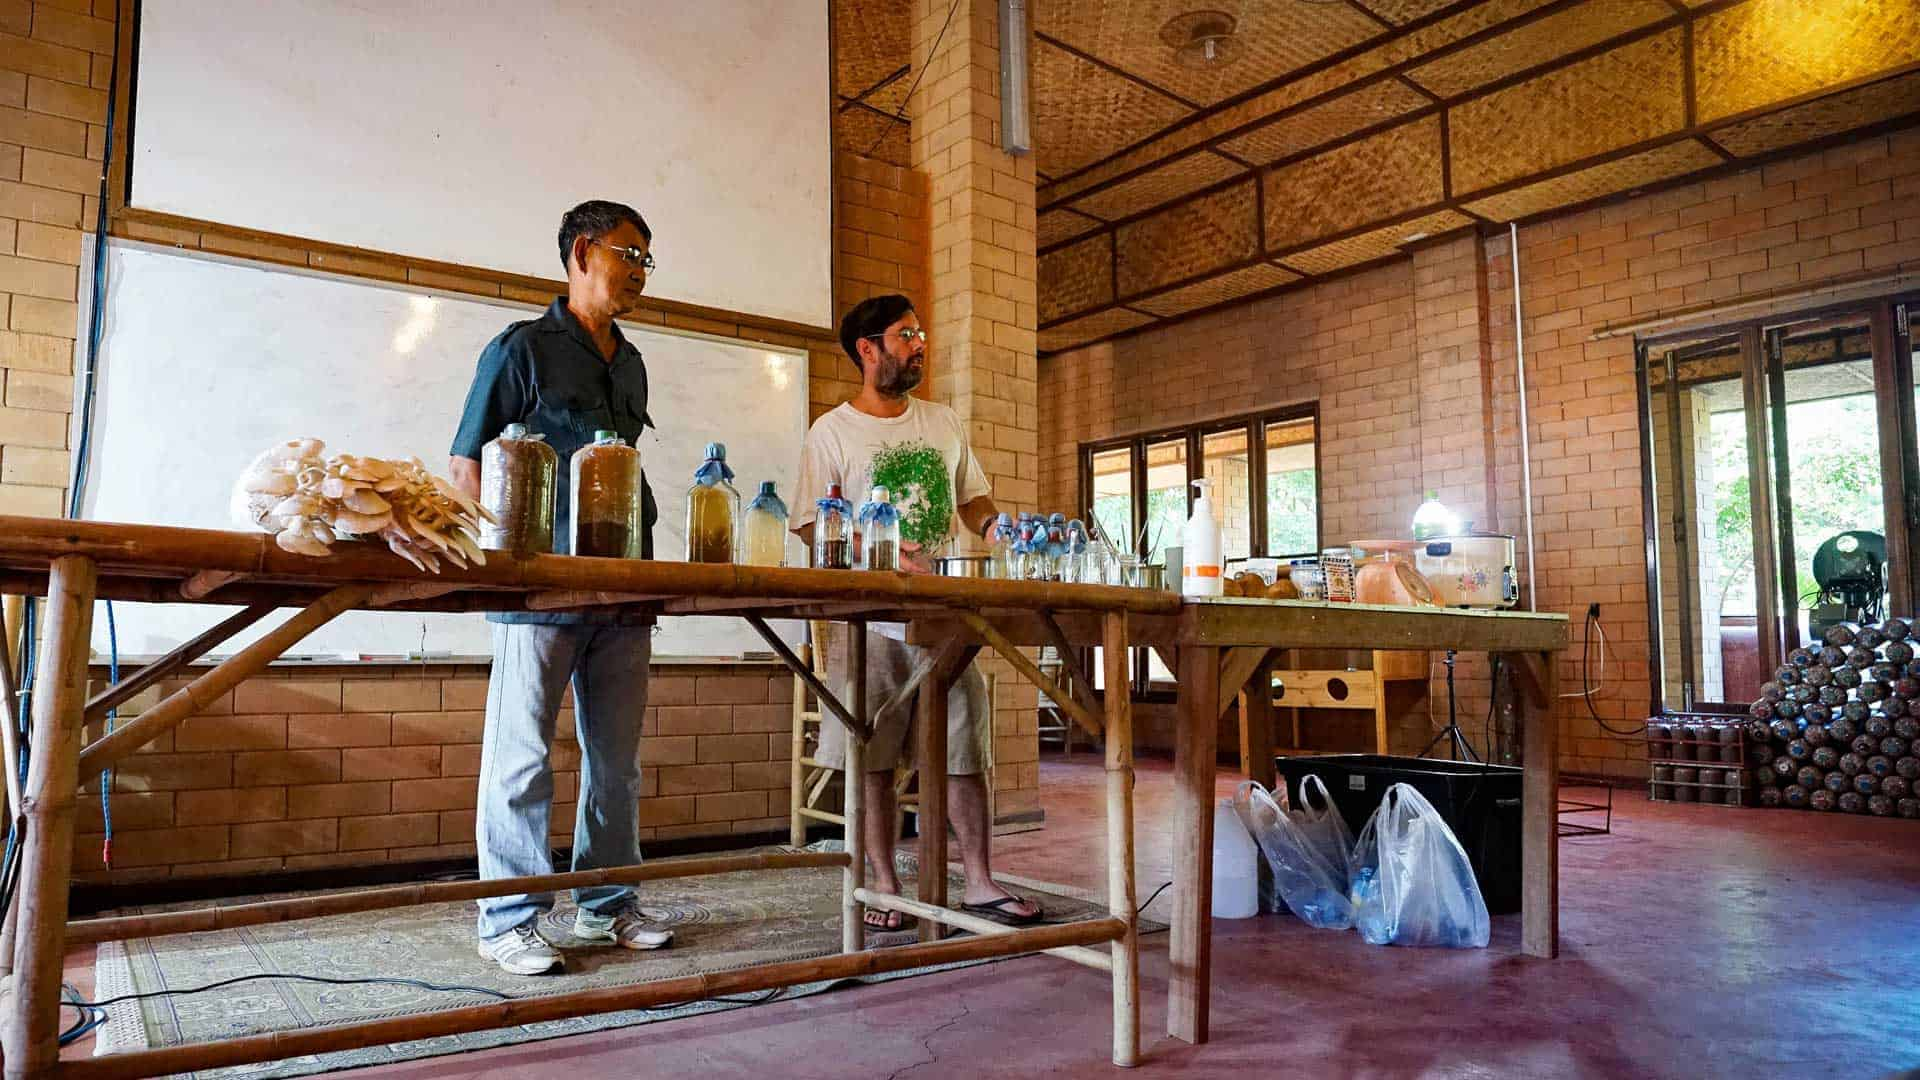 Beau Wickboldt teaching Permaculture in the classroom